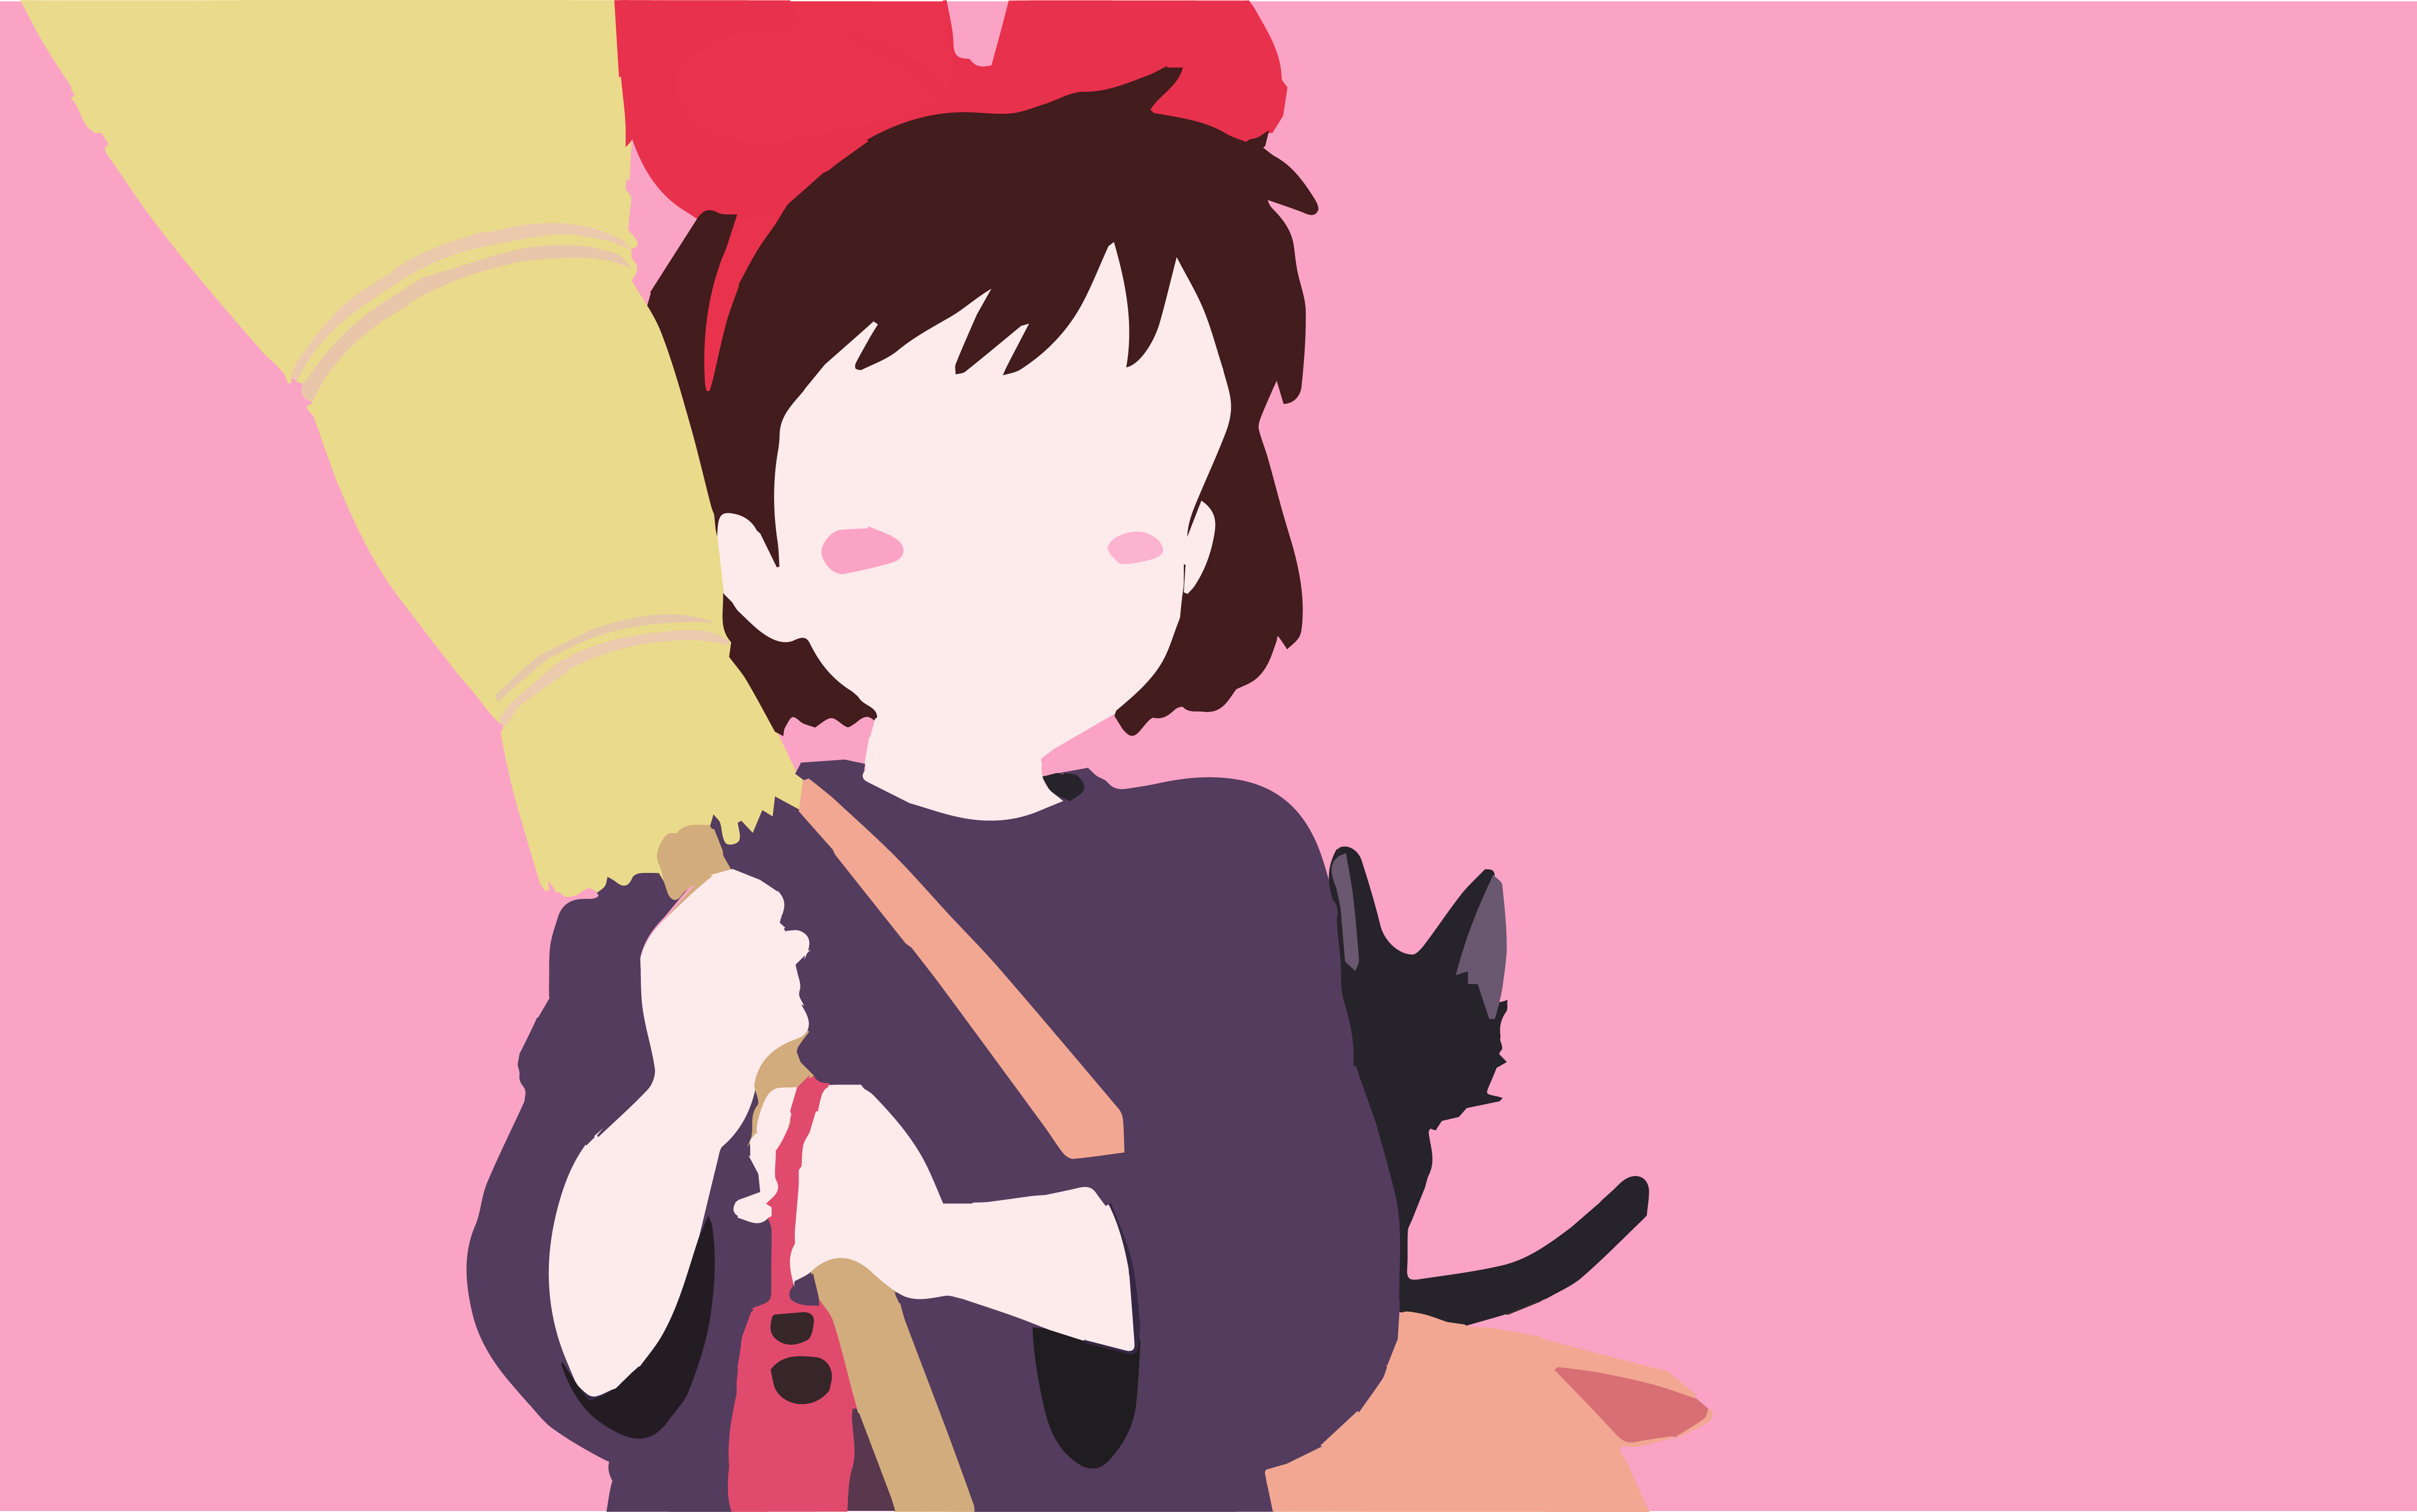 Kikis Delivery Service Minimalist By Yuyuy75 Aug 7 2017 View Original